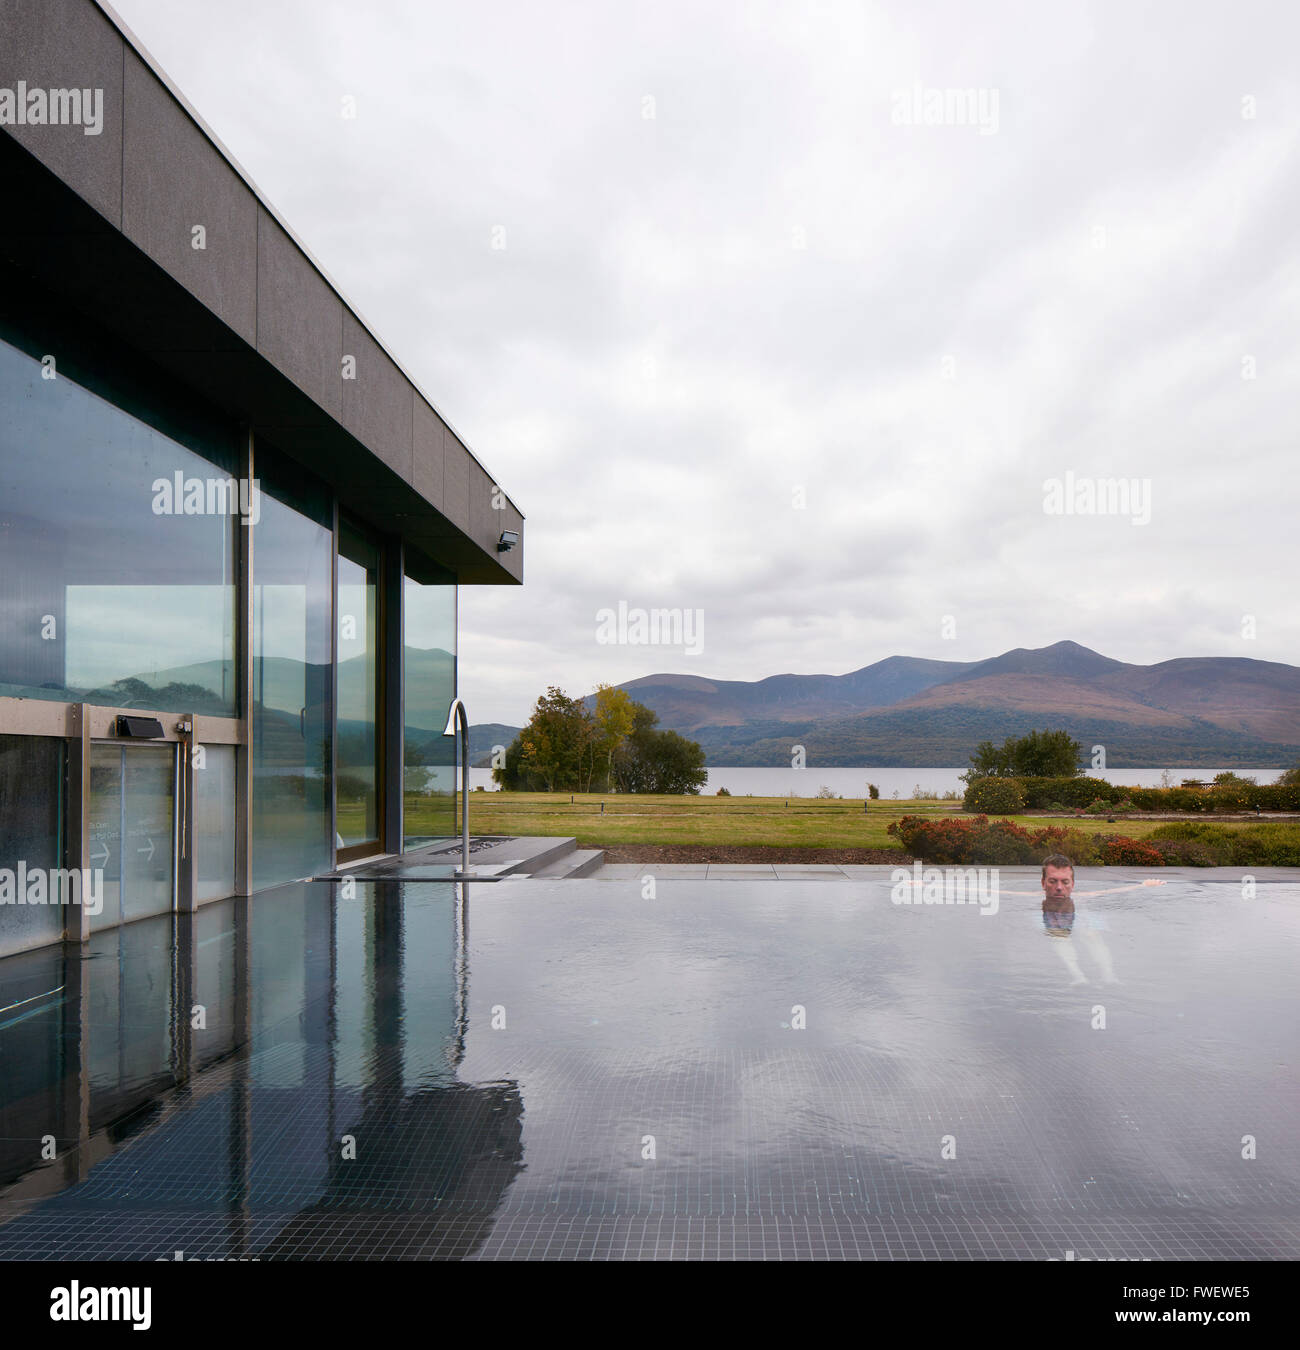 Outdoor pool with bather. The Europe Hotel, Killarney, Ireland. Architect: Gottstein, 2015. - Stock Image